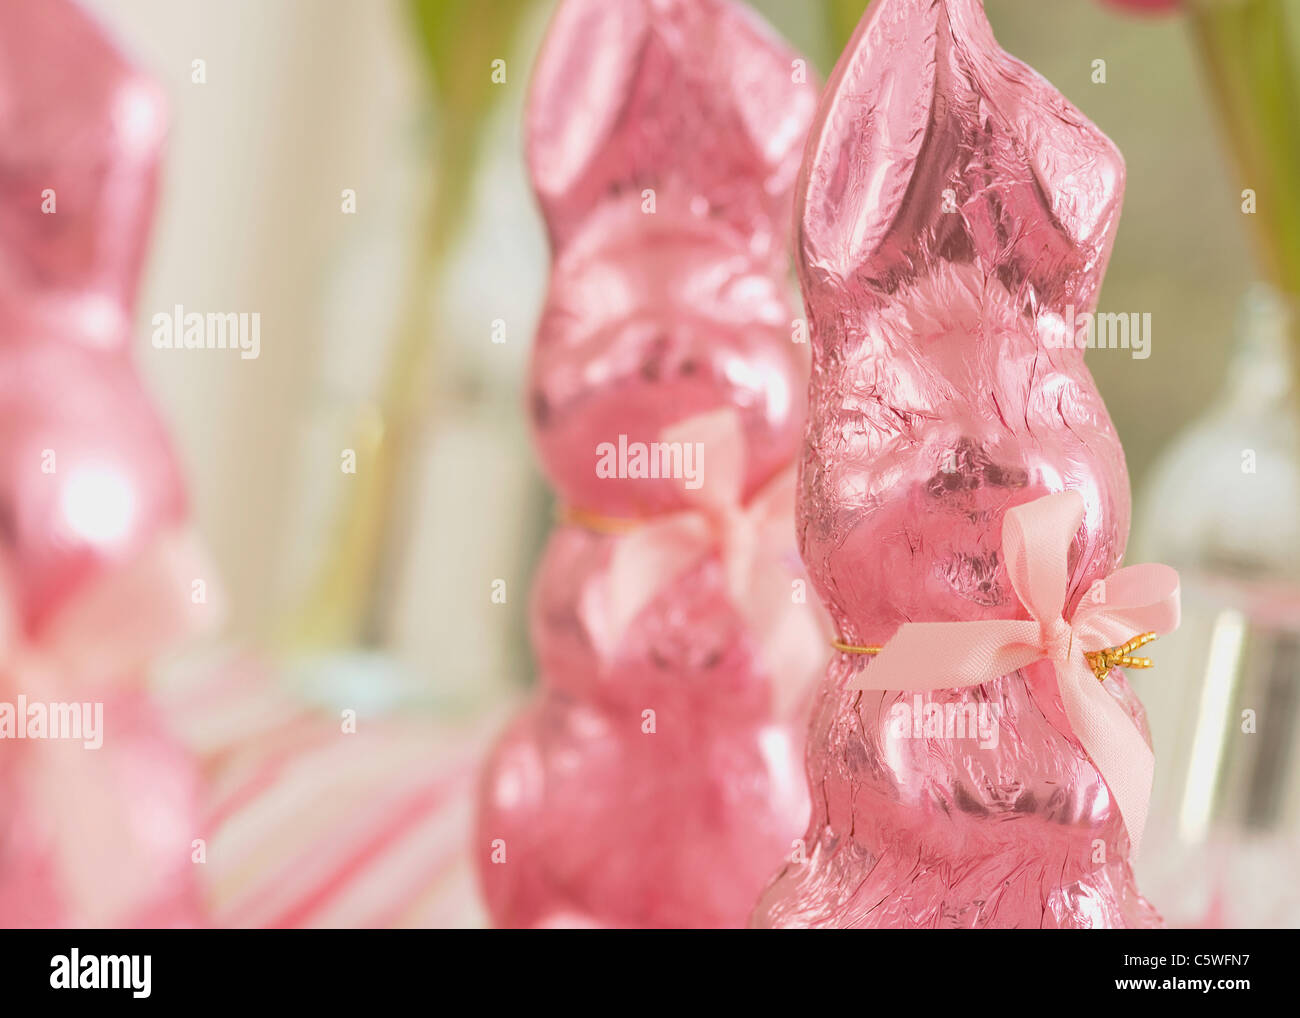 Pink wrapped chocolate easter bunnies - Stock Image